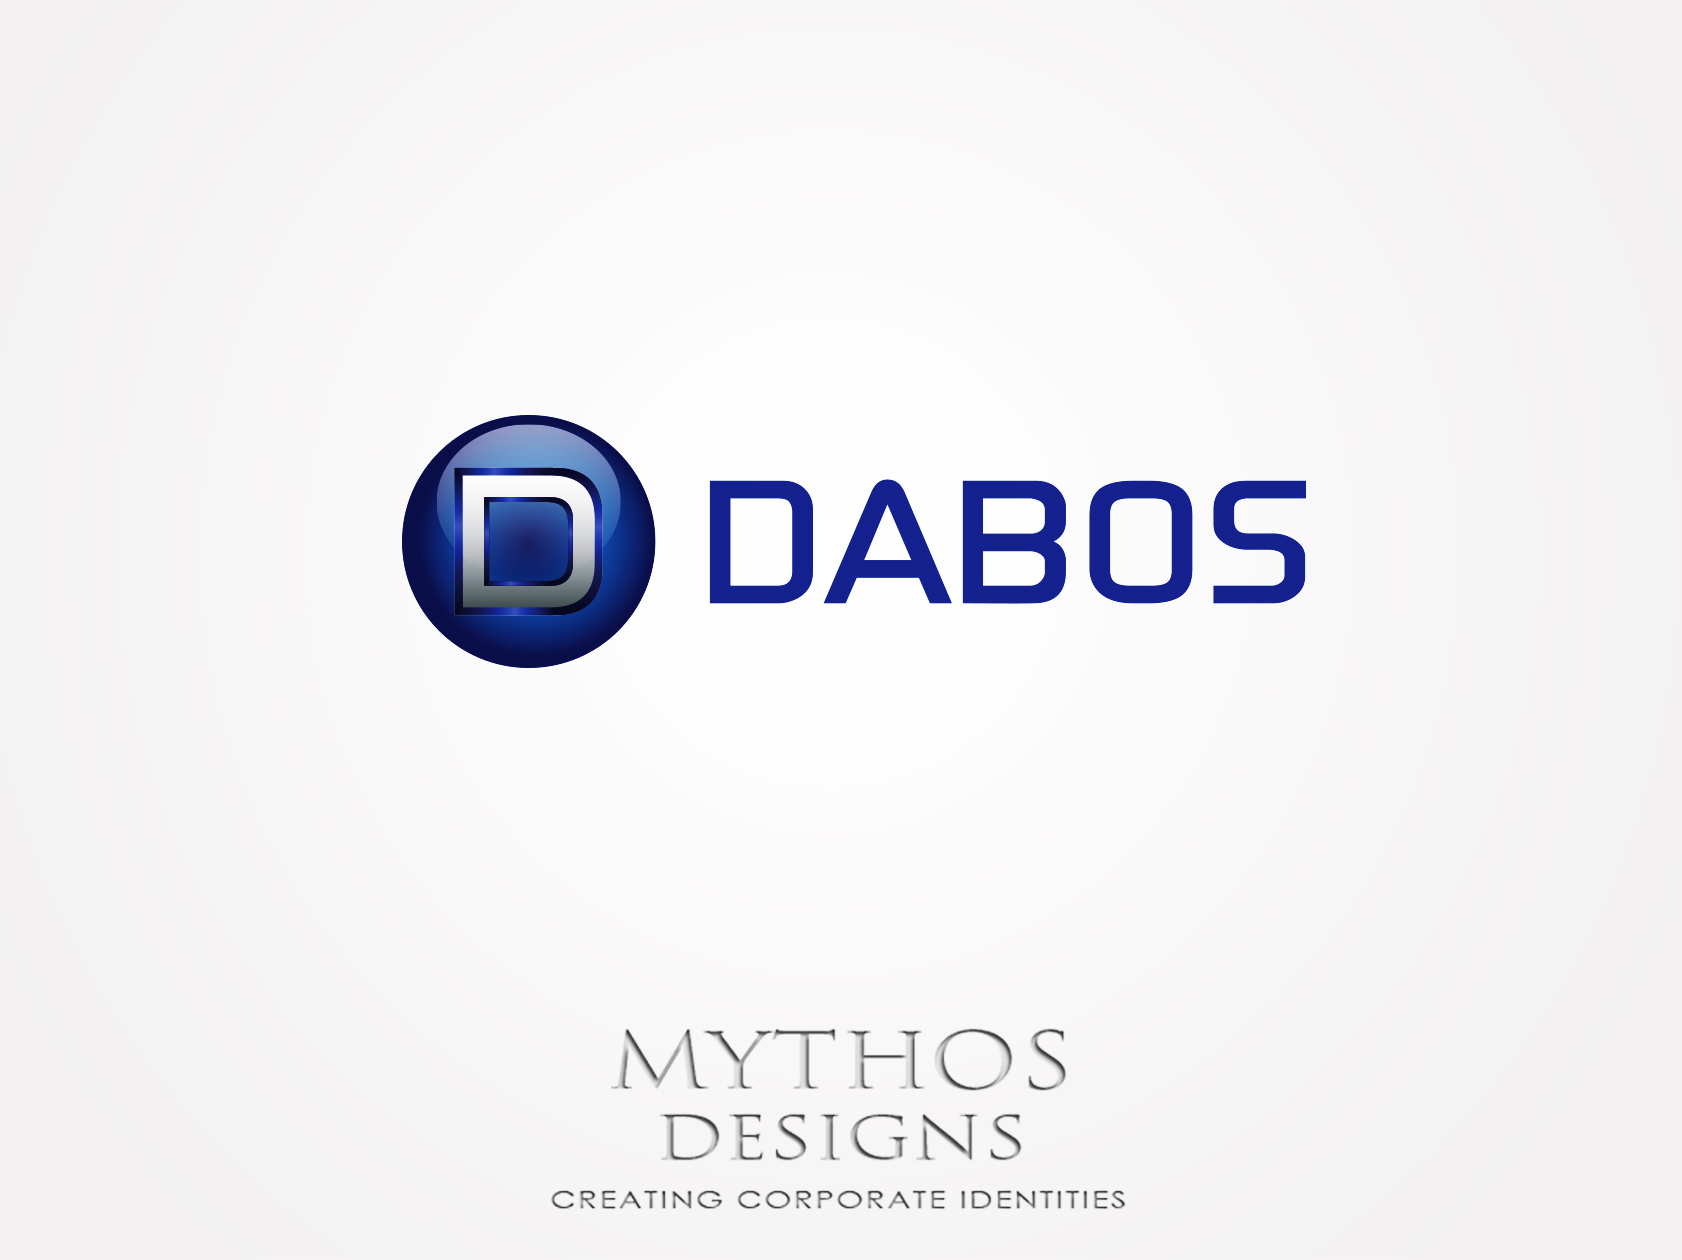 Logo Design by Mythos Designs - Entry No. 158 in the Logo Design Contest Imaginative Logo Design for DABOS, Limited Liability Company.